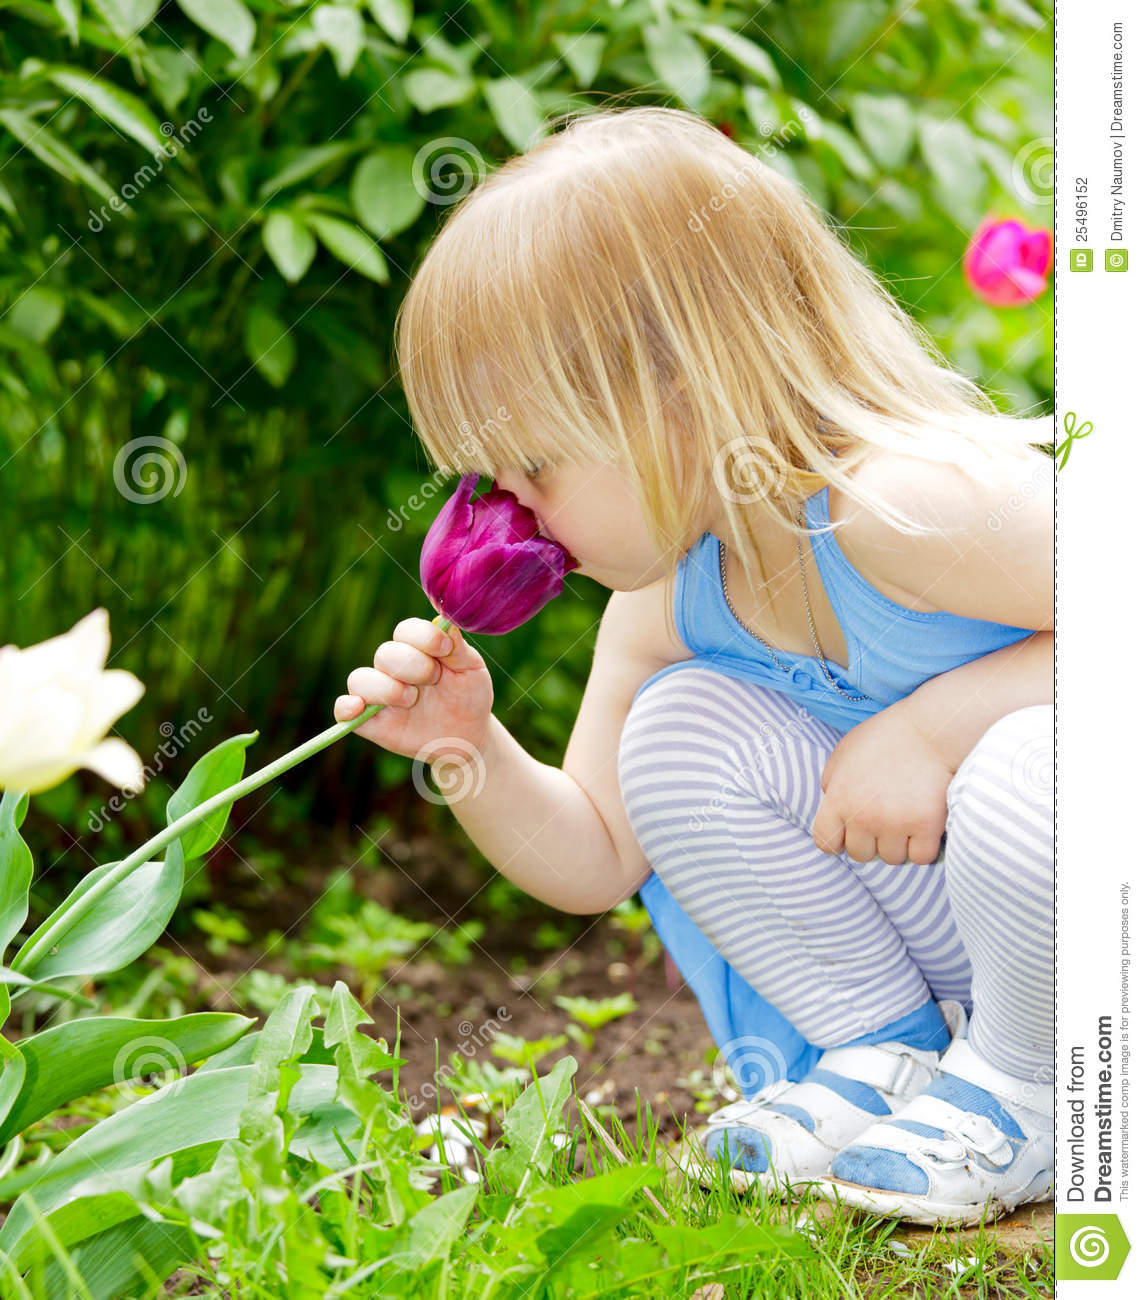 Child Smelling Flower Stock Photo. Image Of Holding, Hand